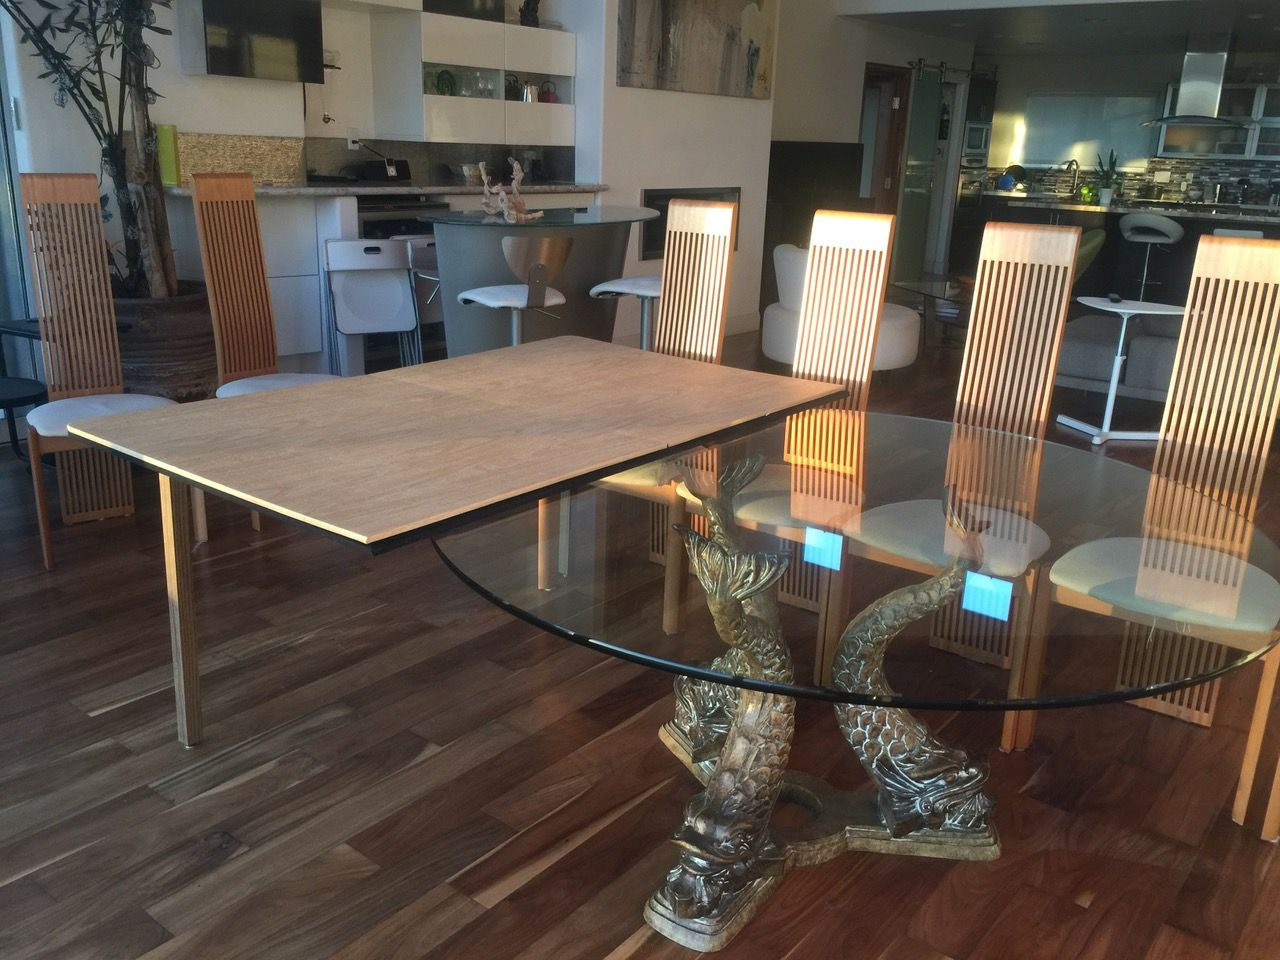 How To Extend Your Existing Table To Accommodate More People Buy Table Extension Pad This Is Dining Room Table Dining Room Table Set Dining Room Table Marble